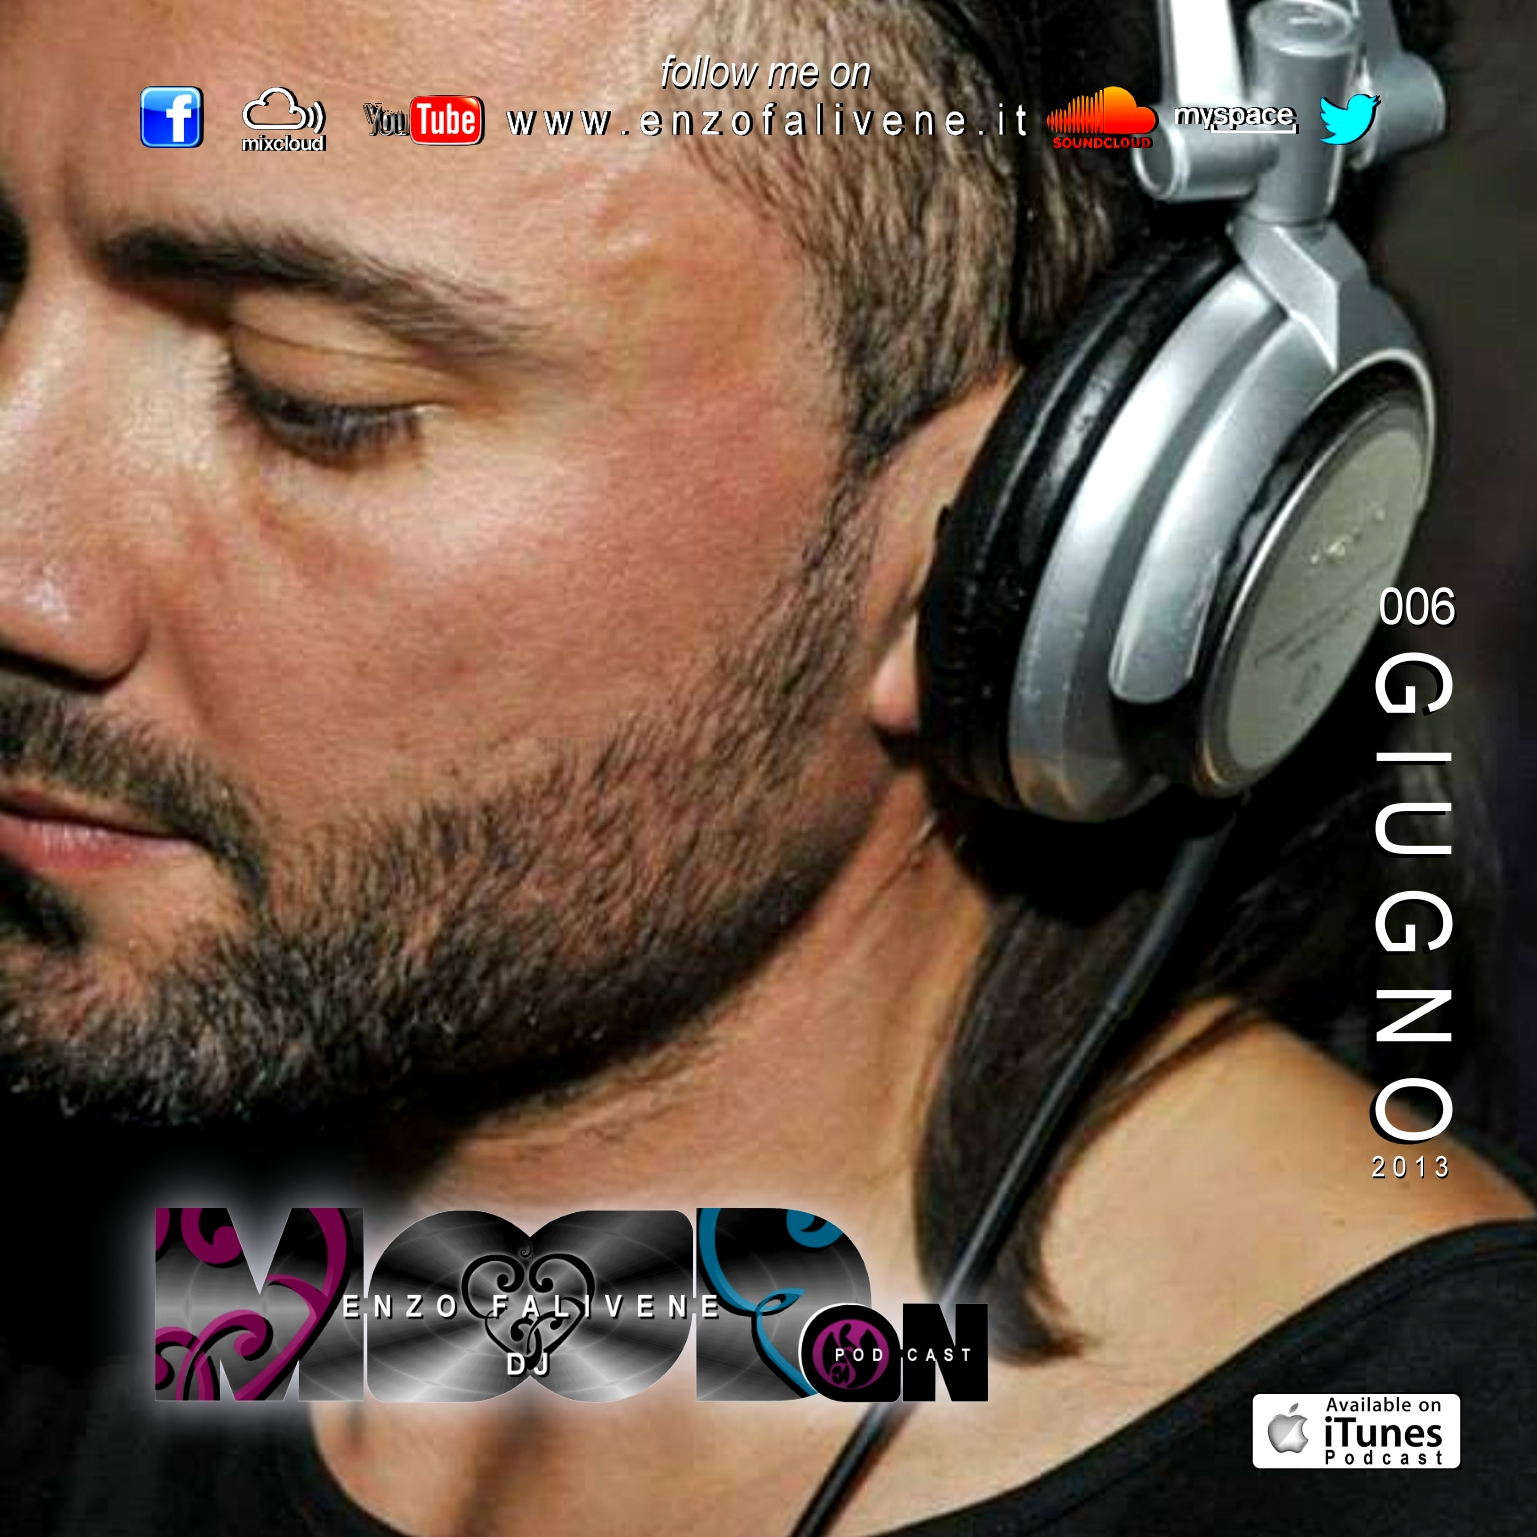 Dj Enzo Falivene-Mood On 006 Giugno 2013